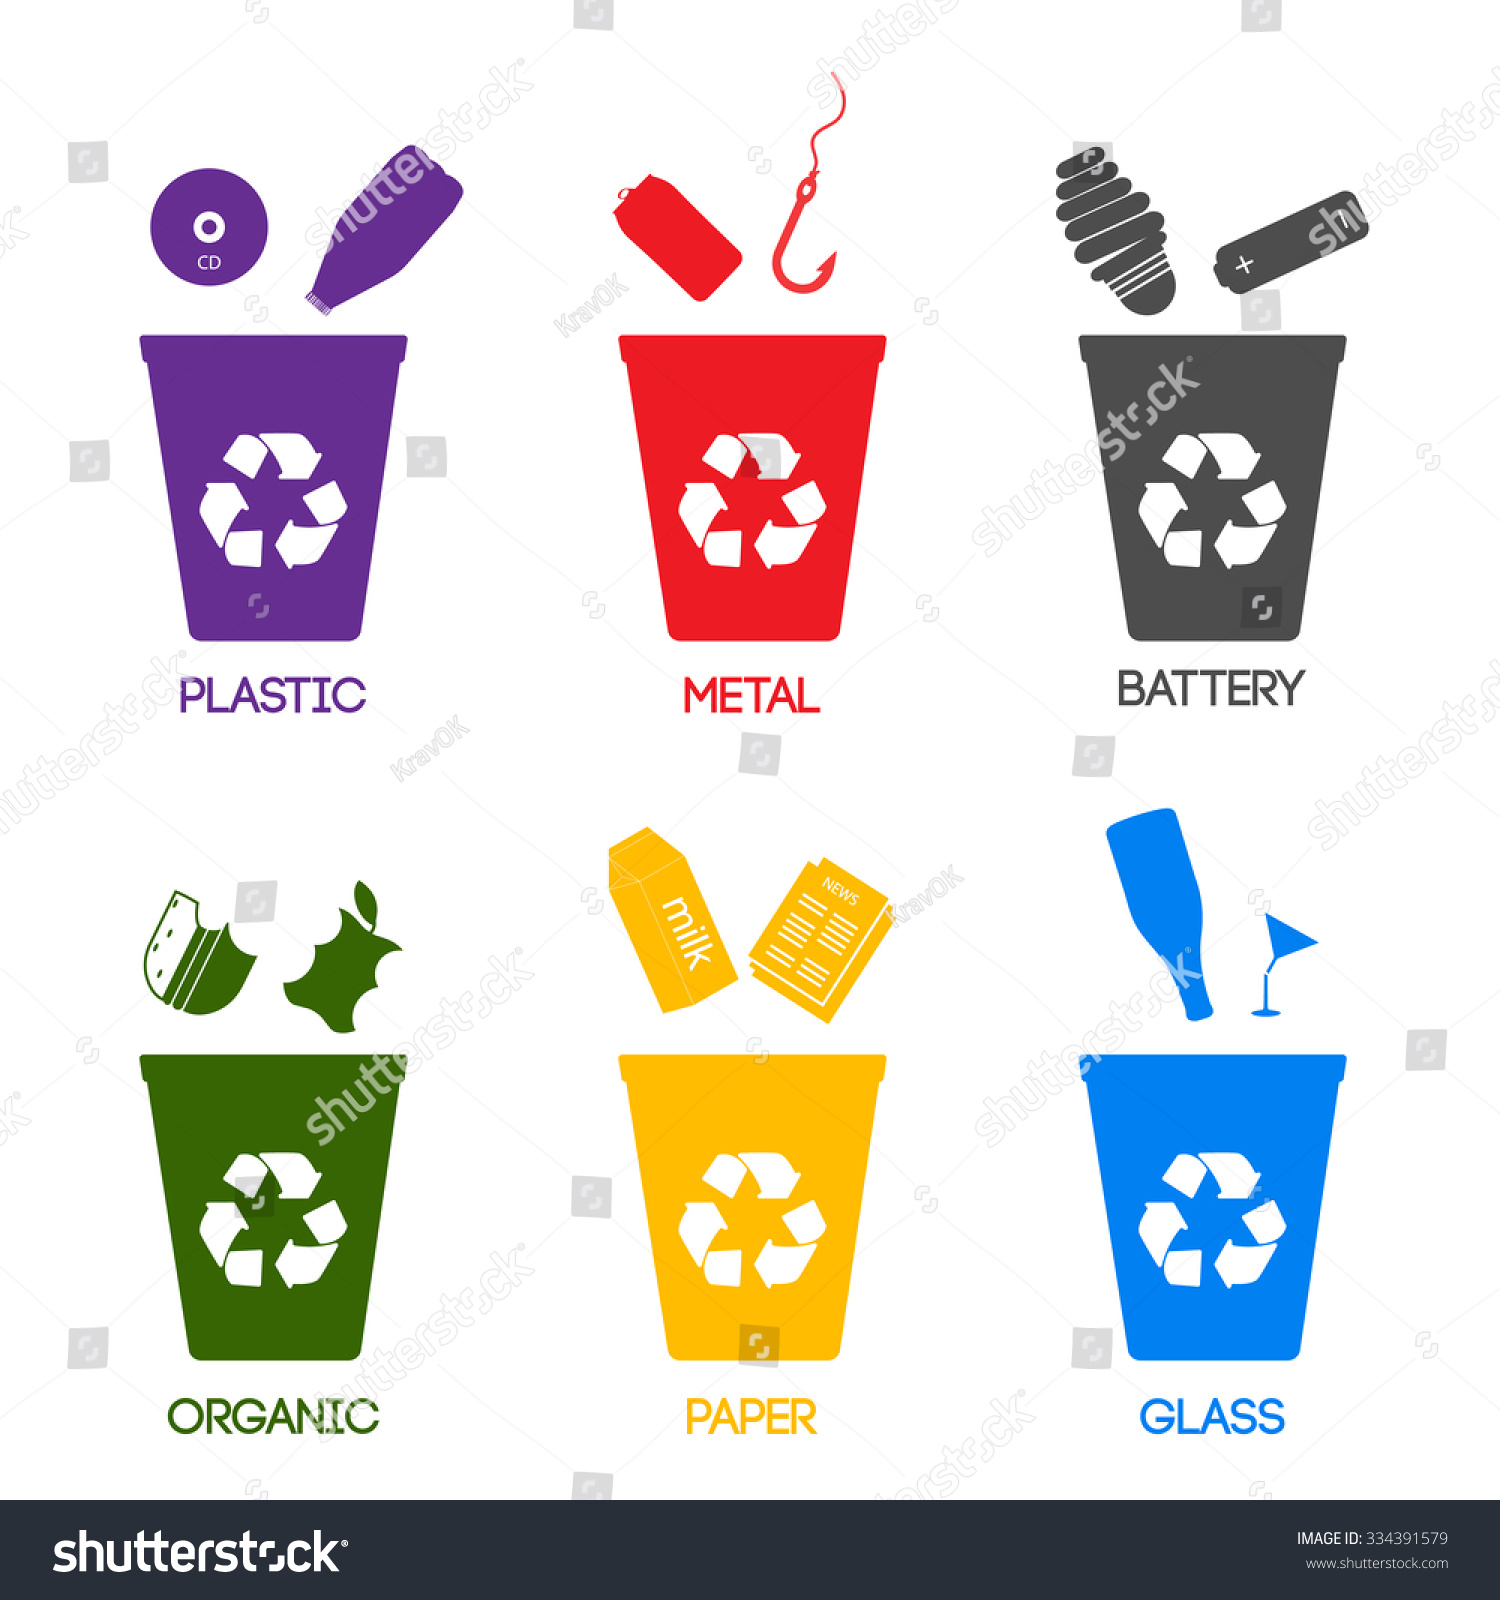 research papers on mandatory recycling Should recycling be mandatory essay - leave behind those sleepless nights writing your essay with our custom writing help begin working on your coursework right now with top-notch guidance guaranteed by the service dissertations, essays & research papers of highest quality.